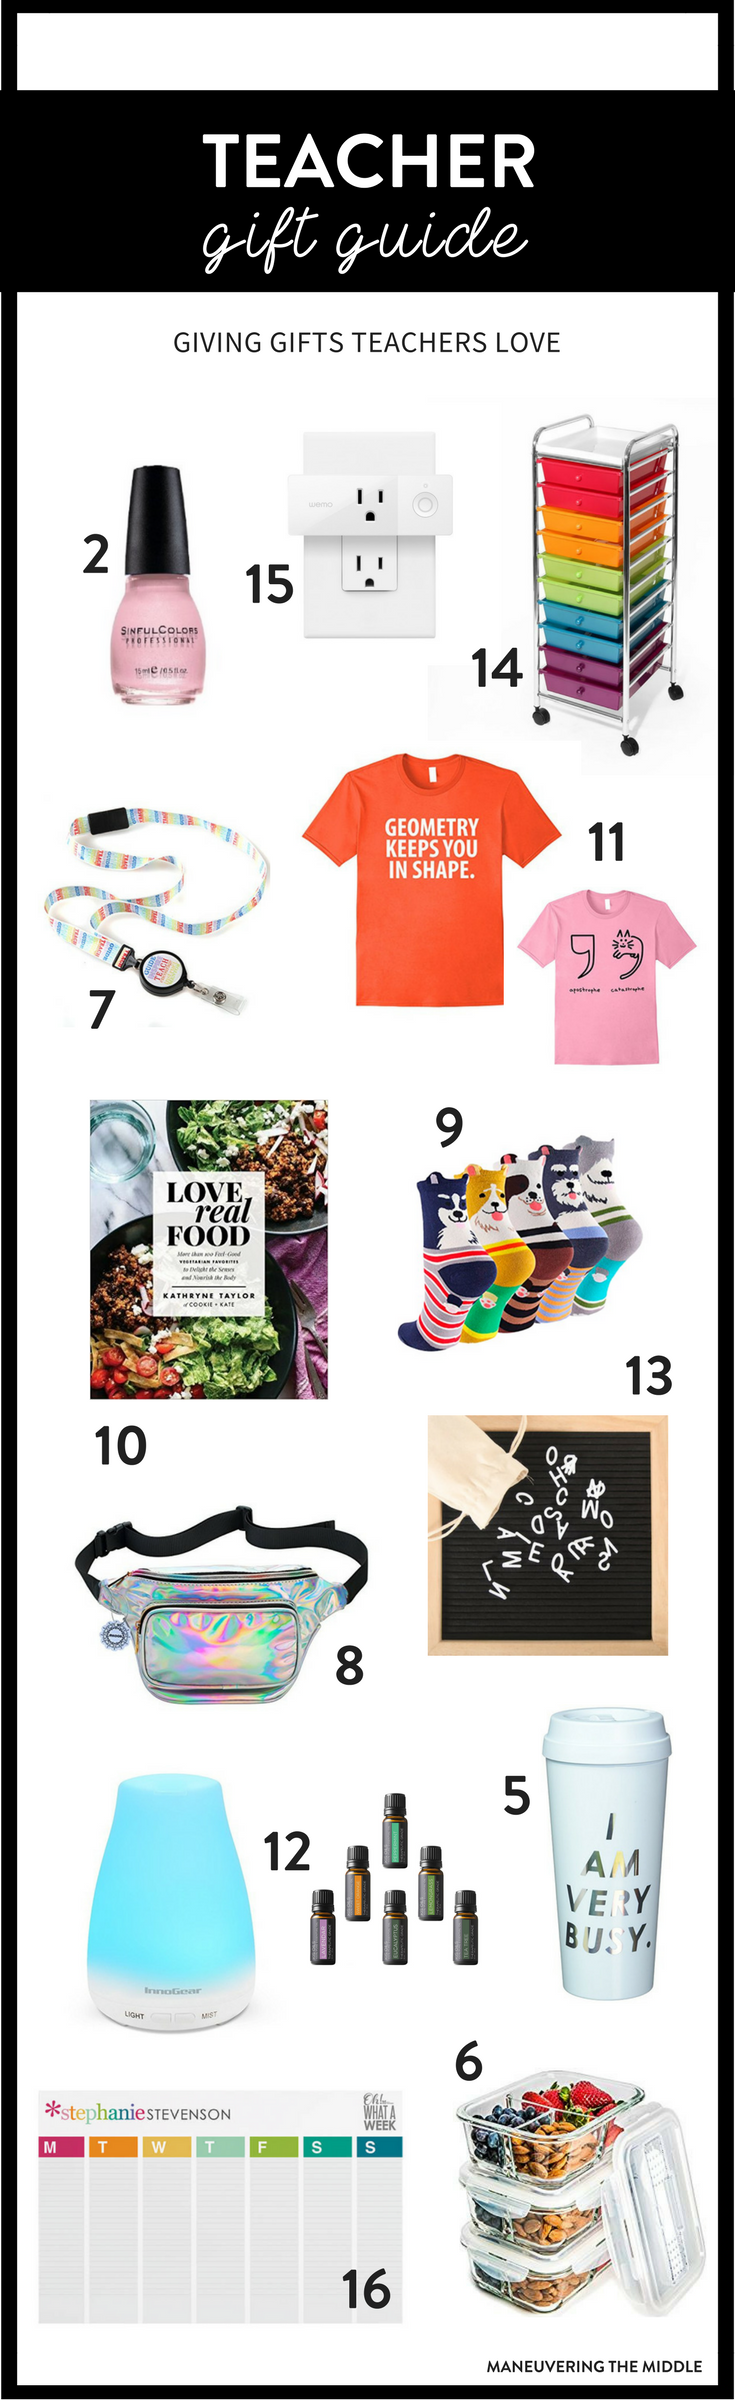 Gifts for teachers or coworkers does not have to be hard this year! Shopping for teachers is made simple with our teacher gift guide. | maneuveringthemiddle.com